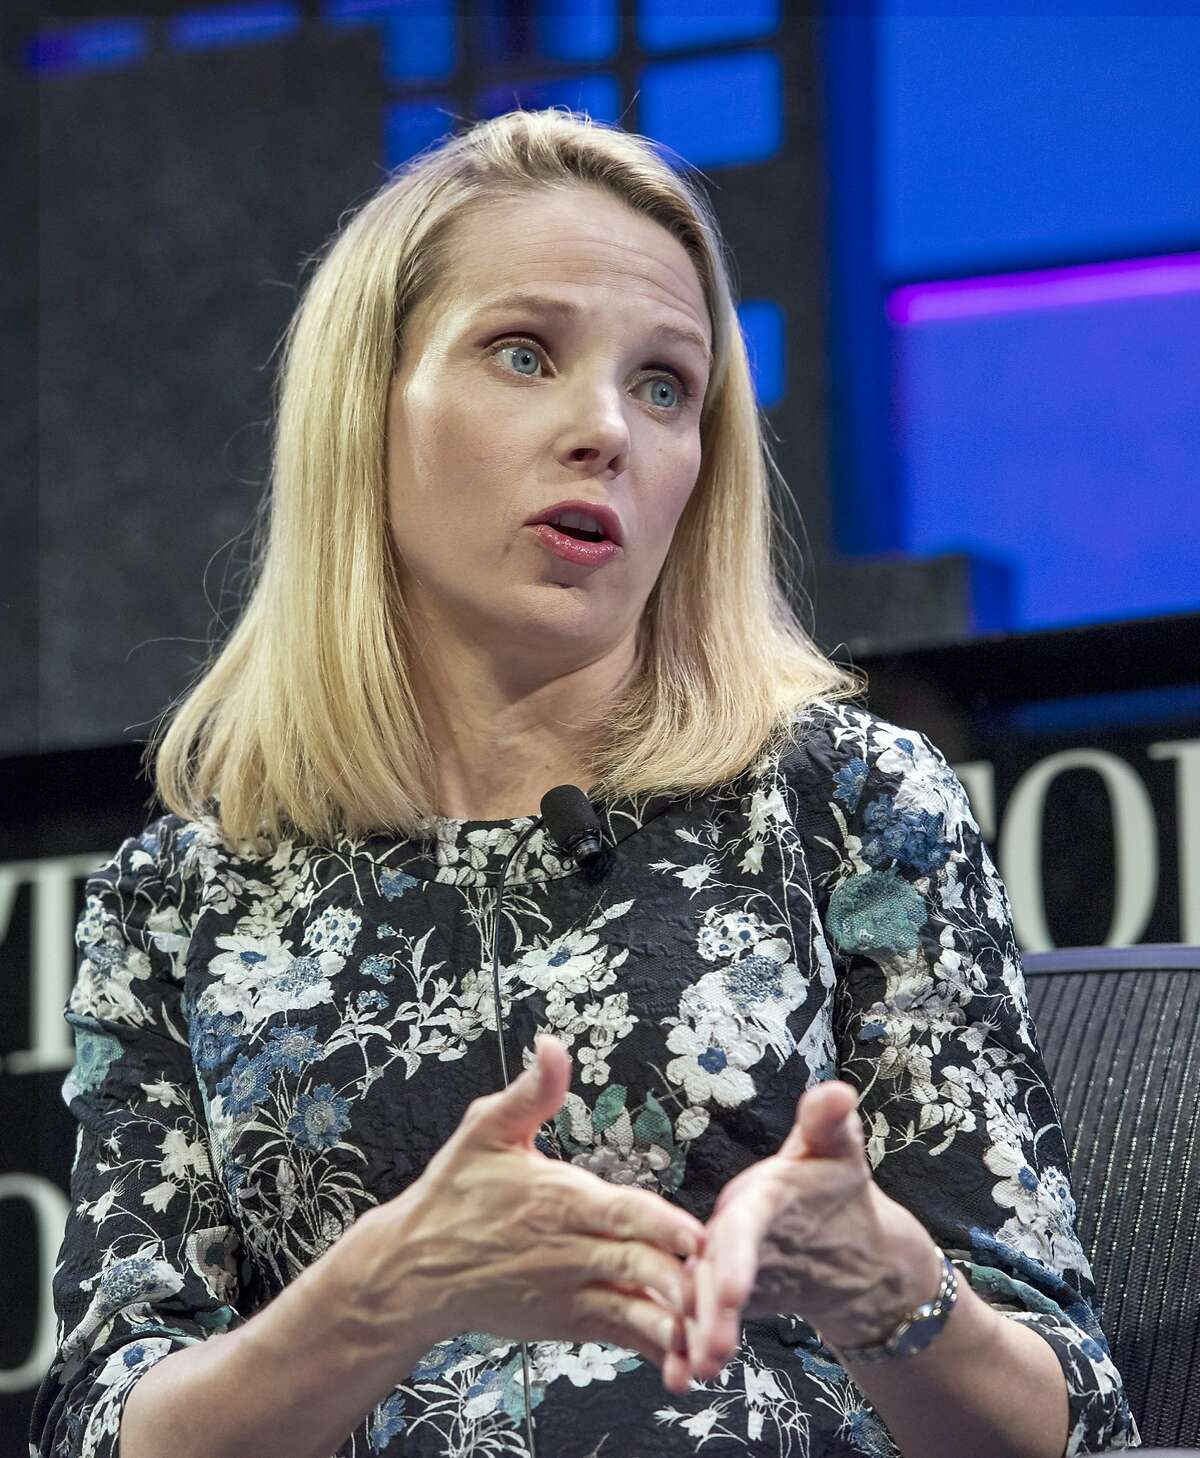 Marissa Mayer, president and chief executive officer of Yahoo Inc., at the 2015 Fortune Global Forum in San Francisco in November. Mayer, who has overseen falling sales in 7 of the past 10 quarters, promised to detail a plan to cut costs and boost growth when quarterly earnings are released Tuesday. Must credit: Bloomberg photo by David Paul Morris.